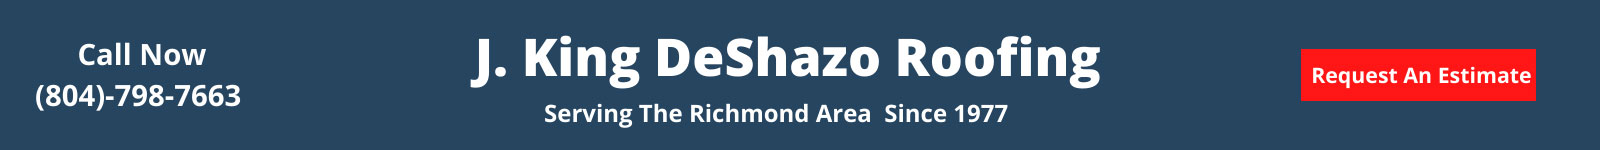 J. King DeShazo Roofing - Serving the Richmond Area Since 1977